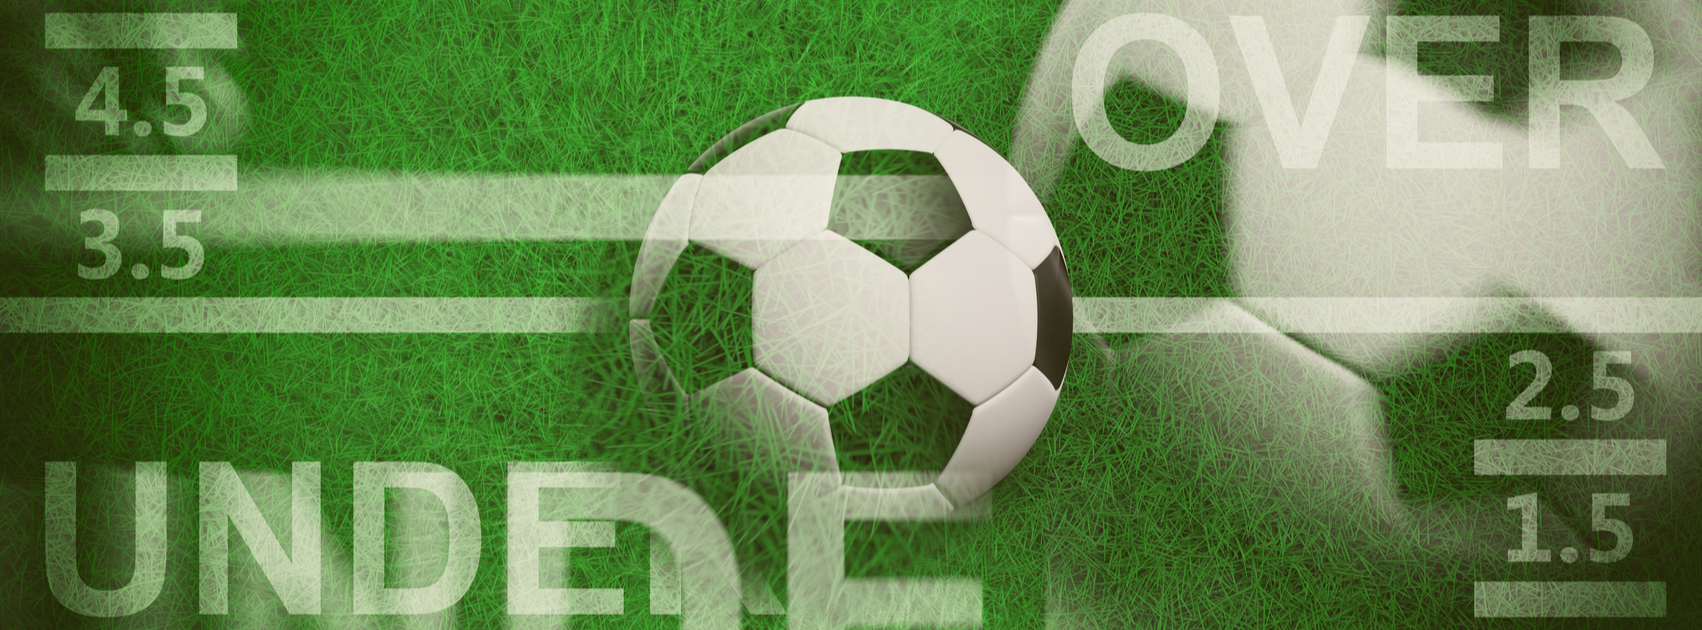 Soccer Picks and Parlays - Best Soccer Predictions + Free Bets